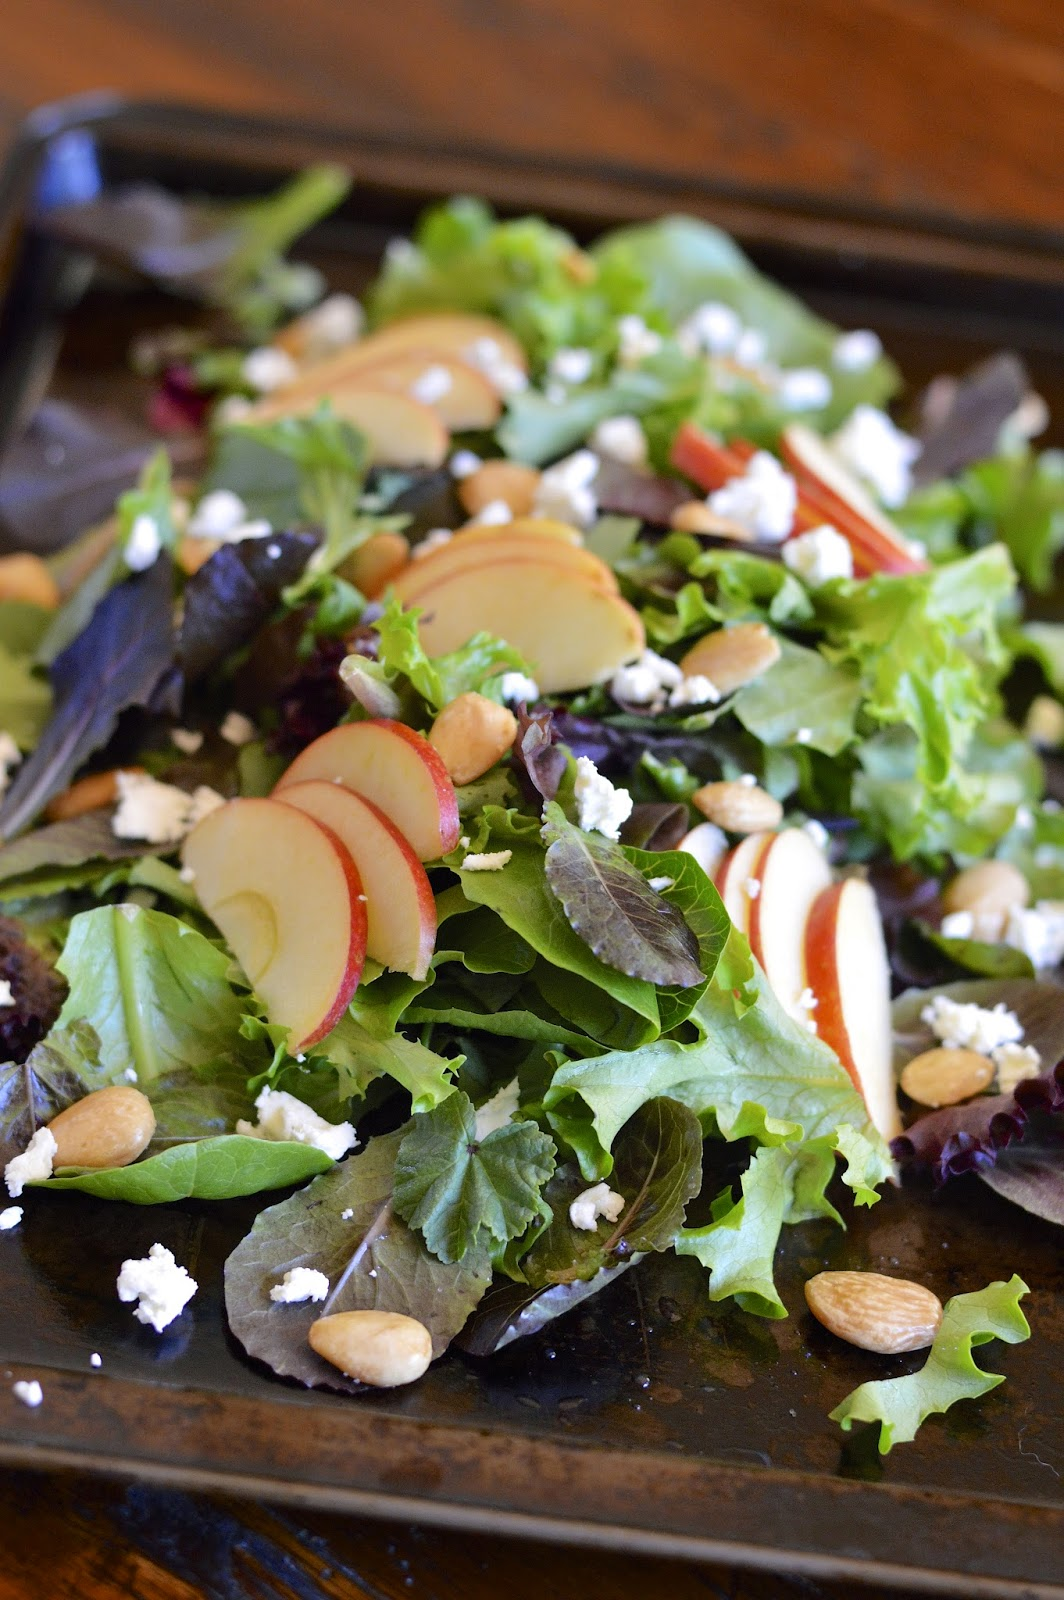 Apple Almond Salad with fresh greens, Marcona almonds and fresh baby greens